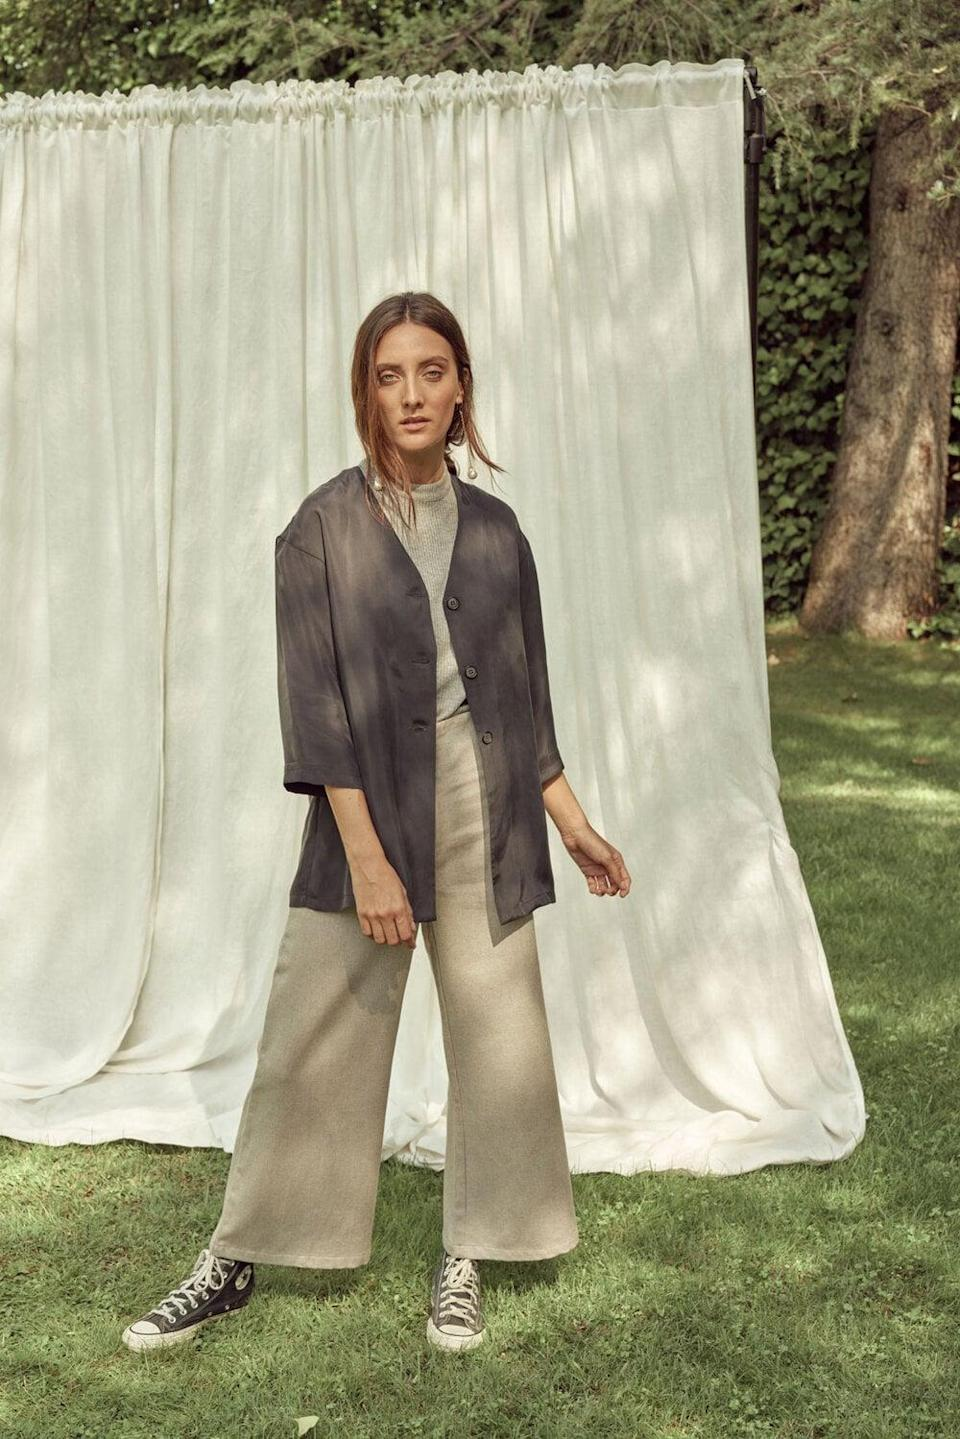 <p>Spanish brand Sunad has a slow-fashion philosophy. The company's goal is to bring back timeless designs using only natural fibers. All of Sunad's products are created in Spain in an attempt to promote the country's rich history of textiles. </p> <p><strong>What We'd Buy</strong>: <span>Sunad Barrosa Noche Shirt</span> ($100)</p>